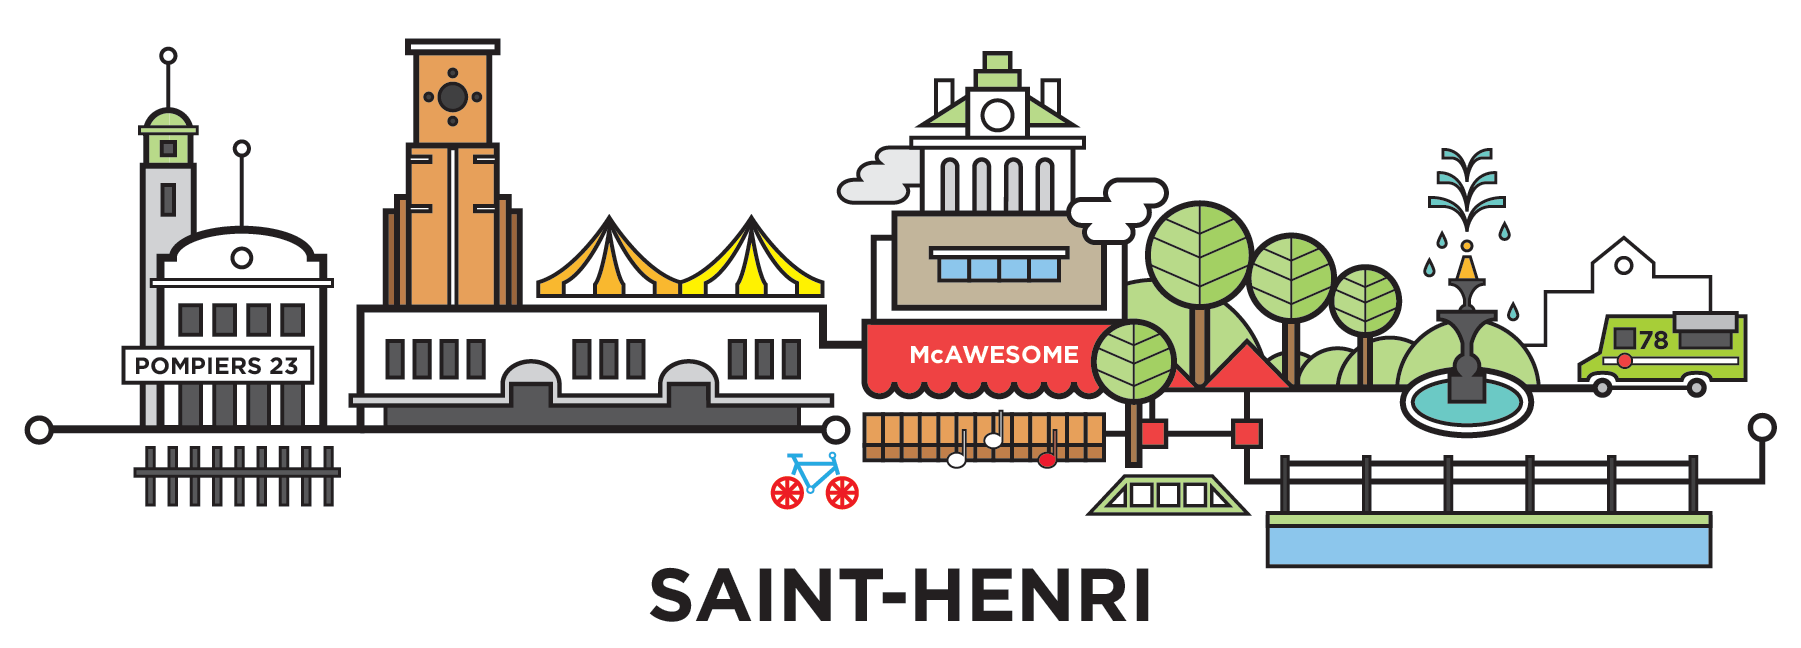 mtl-saint-henri-cityline-illustration-by-loogart